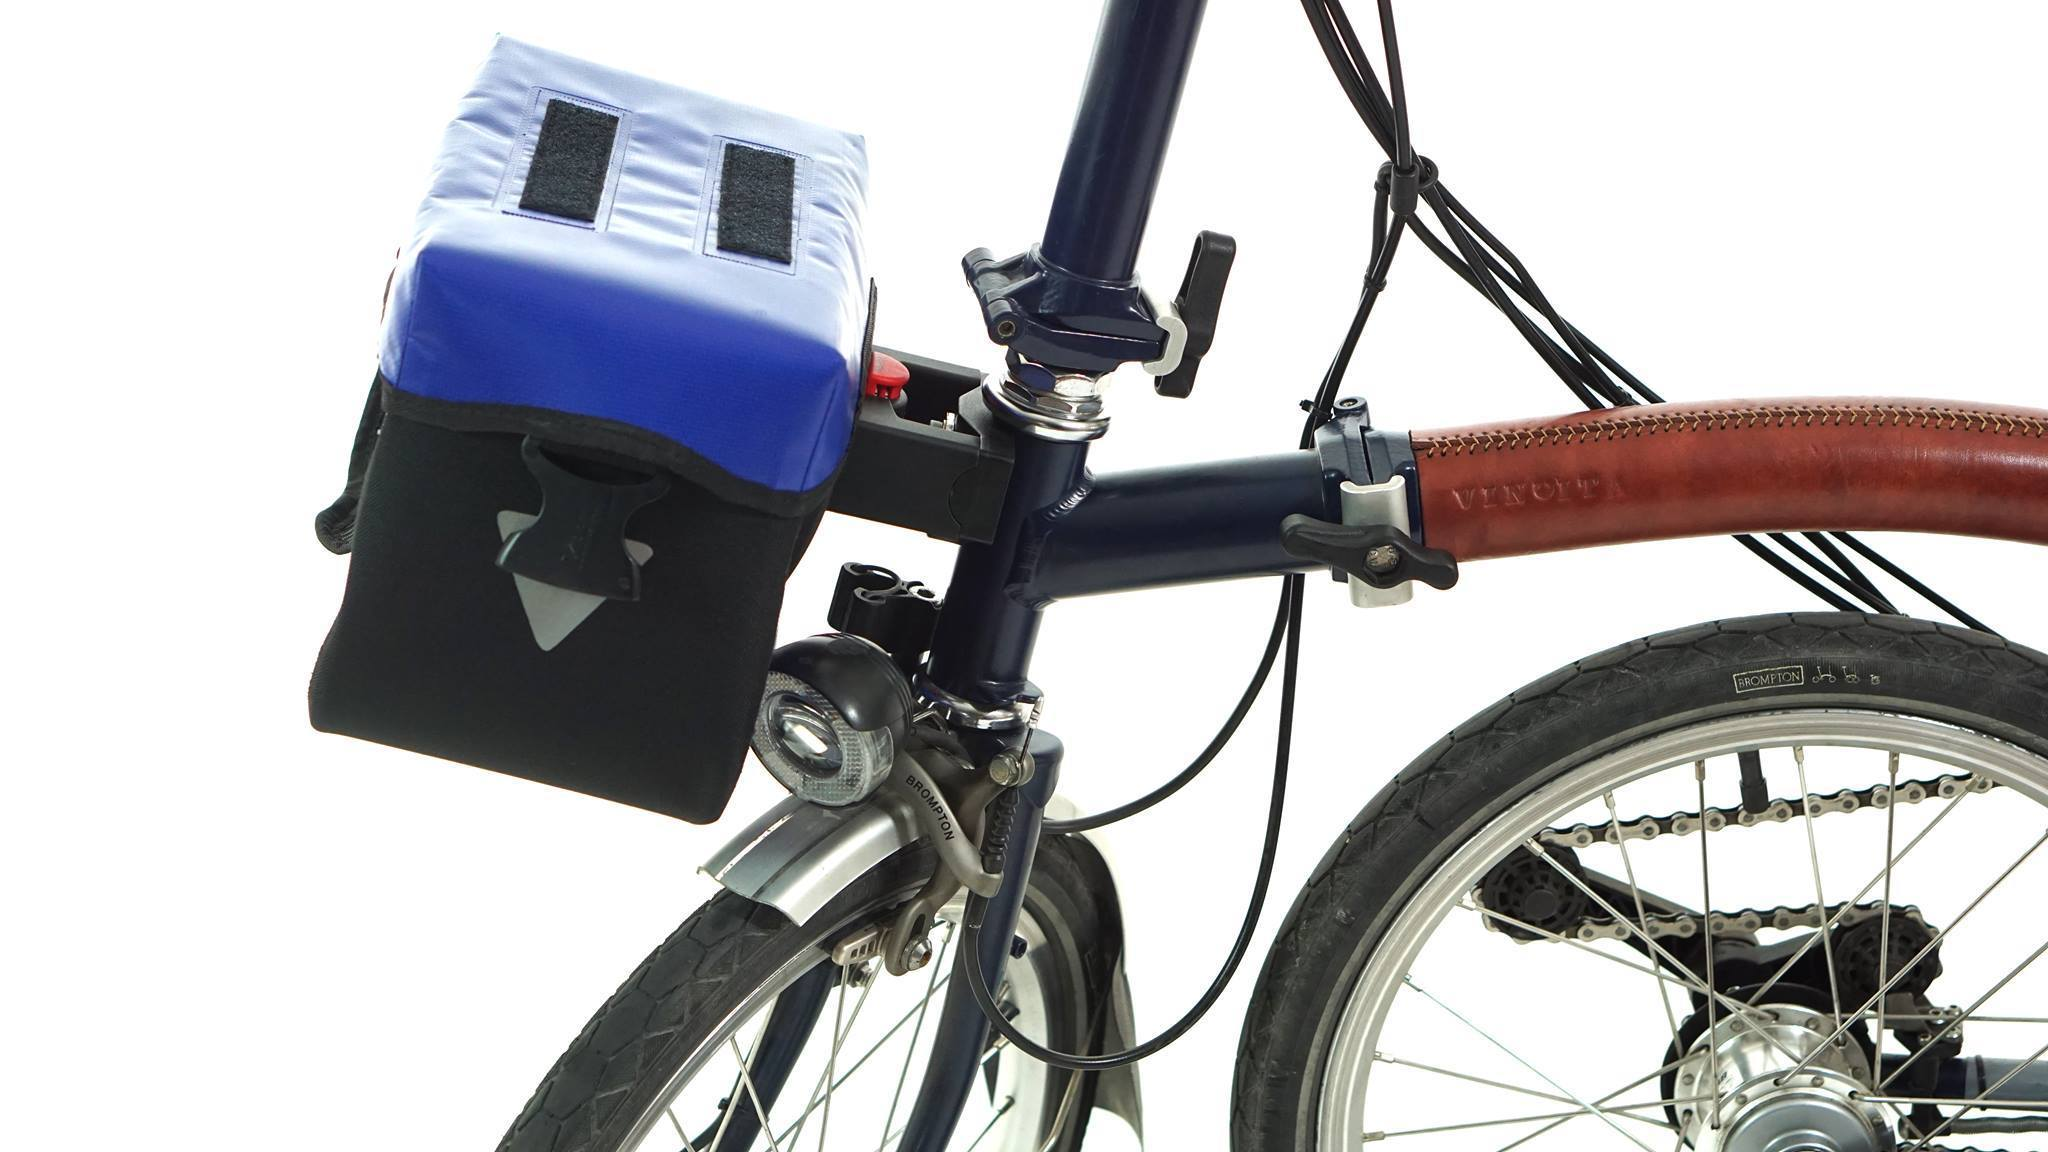 Know the best place to own the accessories for your brompton cycle